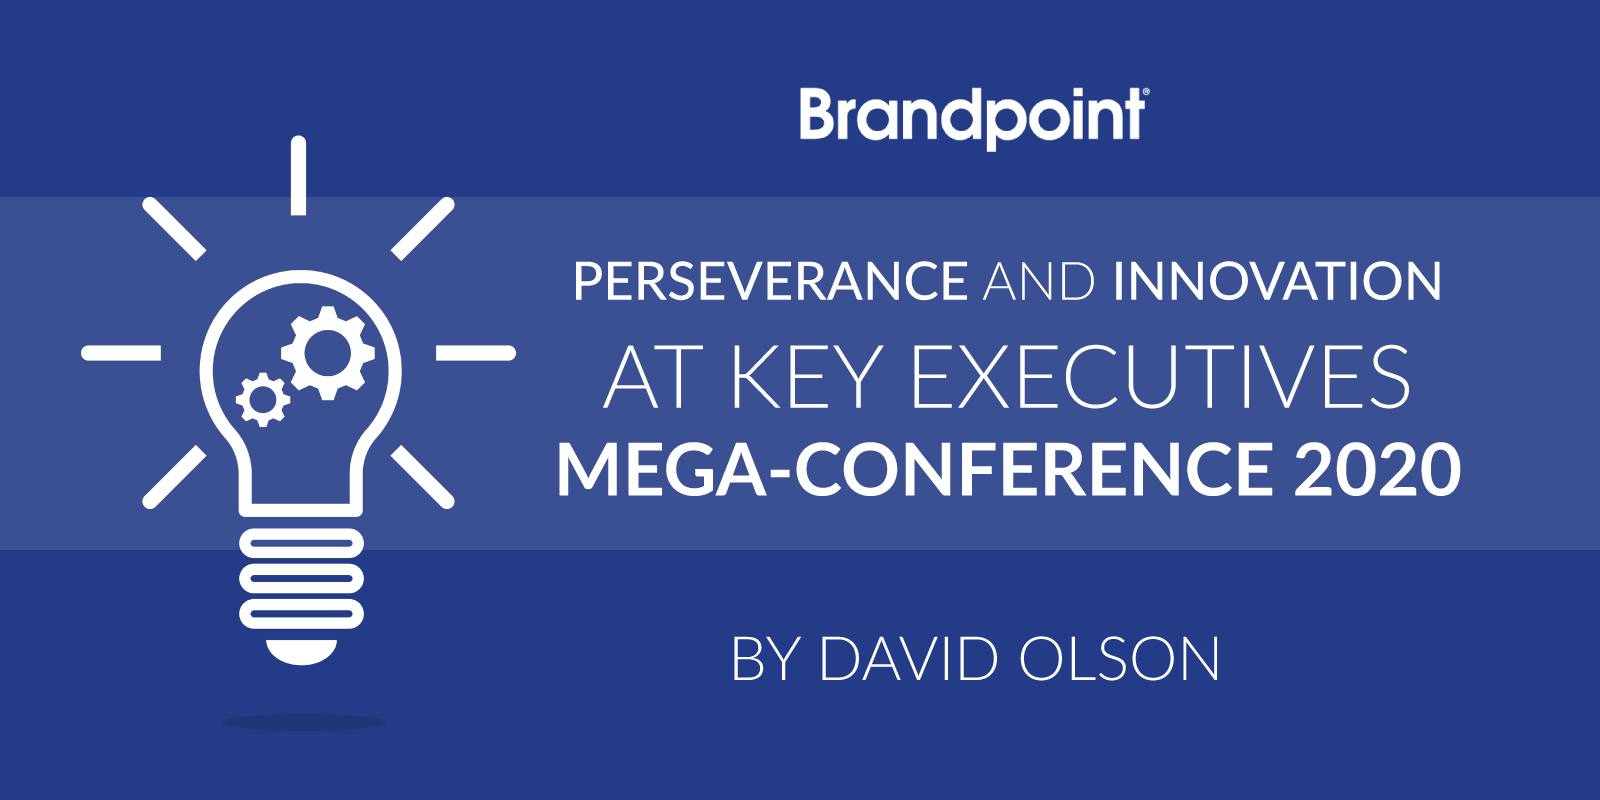 Key Executives Mega-Conference 2020 Takeaways